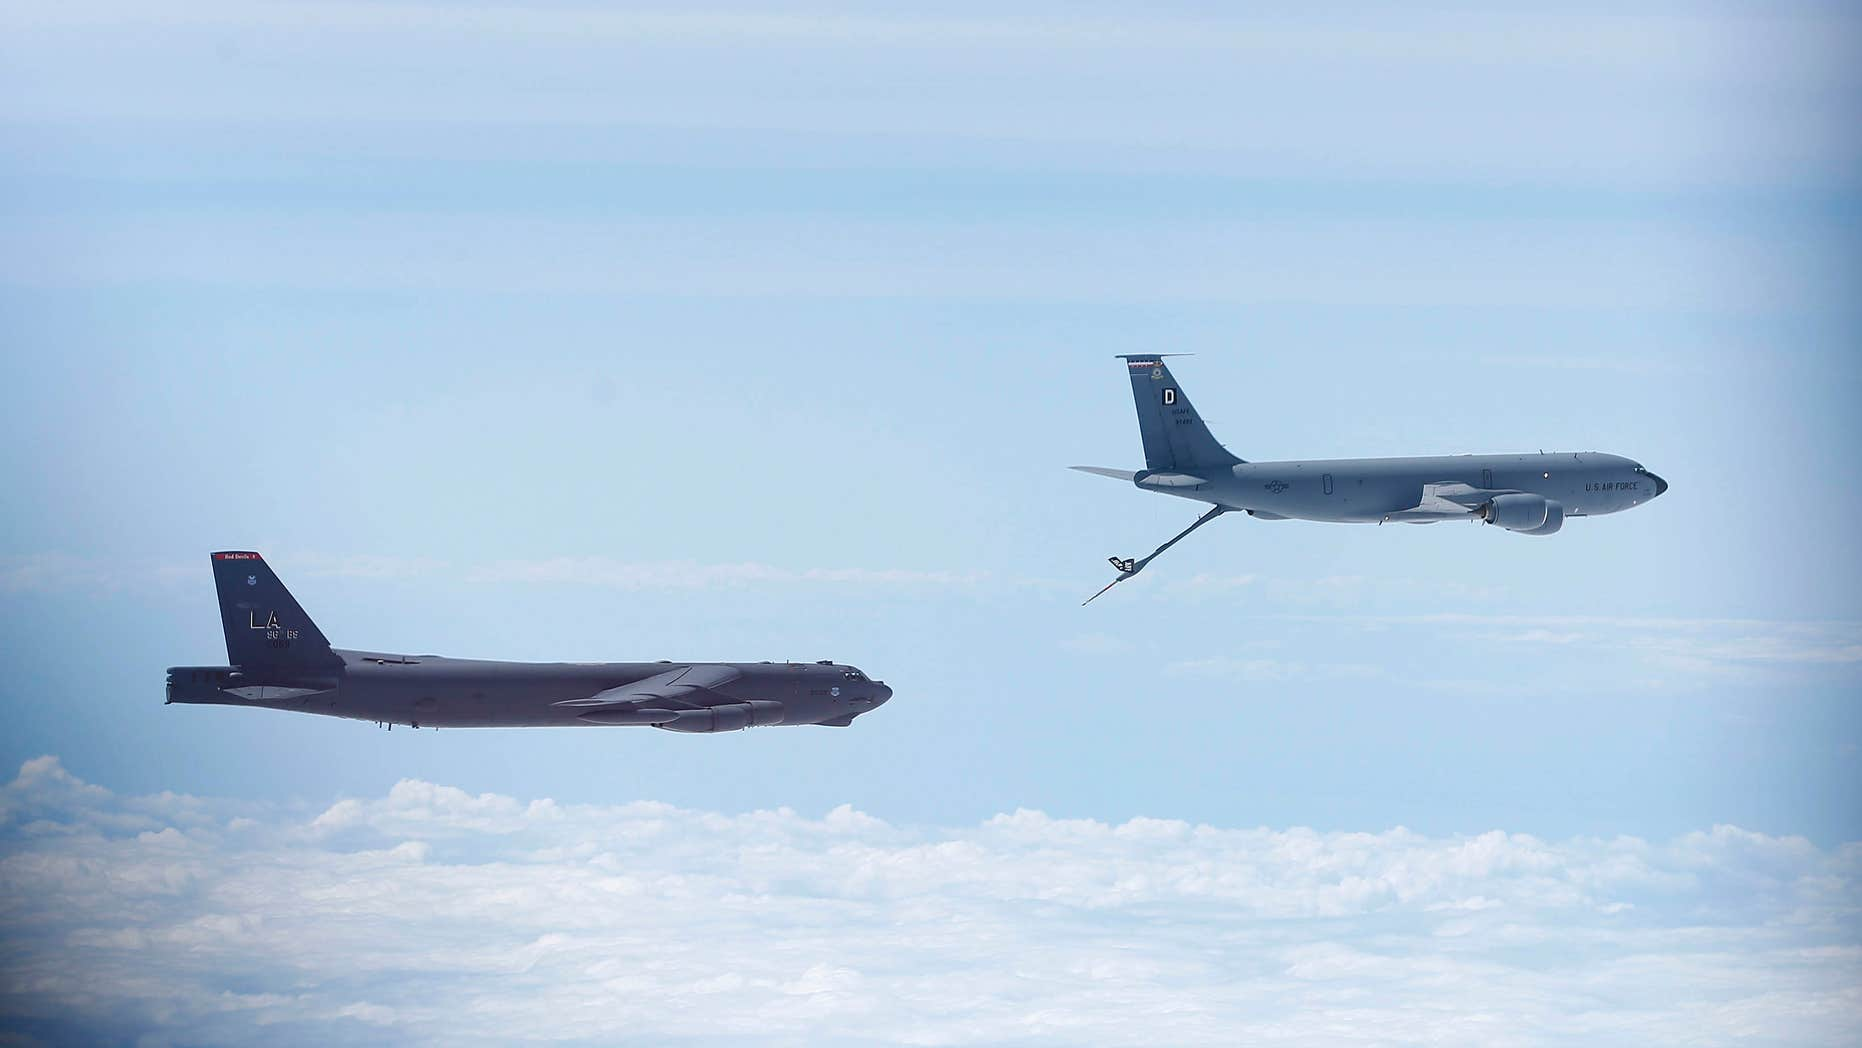 June 17, 2014: A U.S. Air Force B-52 is seen through the window of another as it prepares for a mid-air refuel during a training mission in the United Kingdom's airspace.